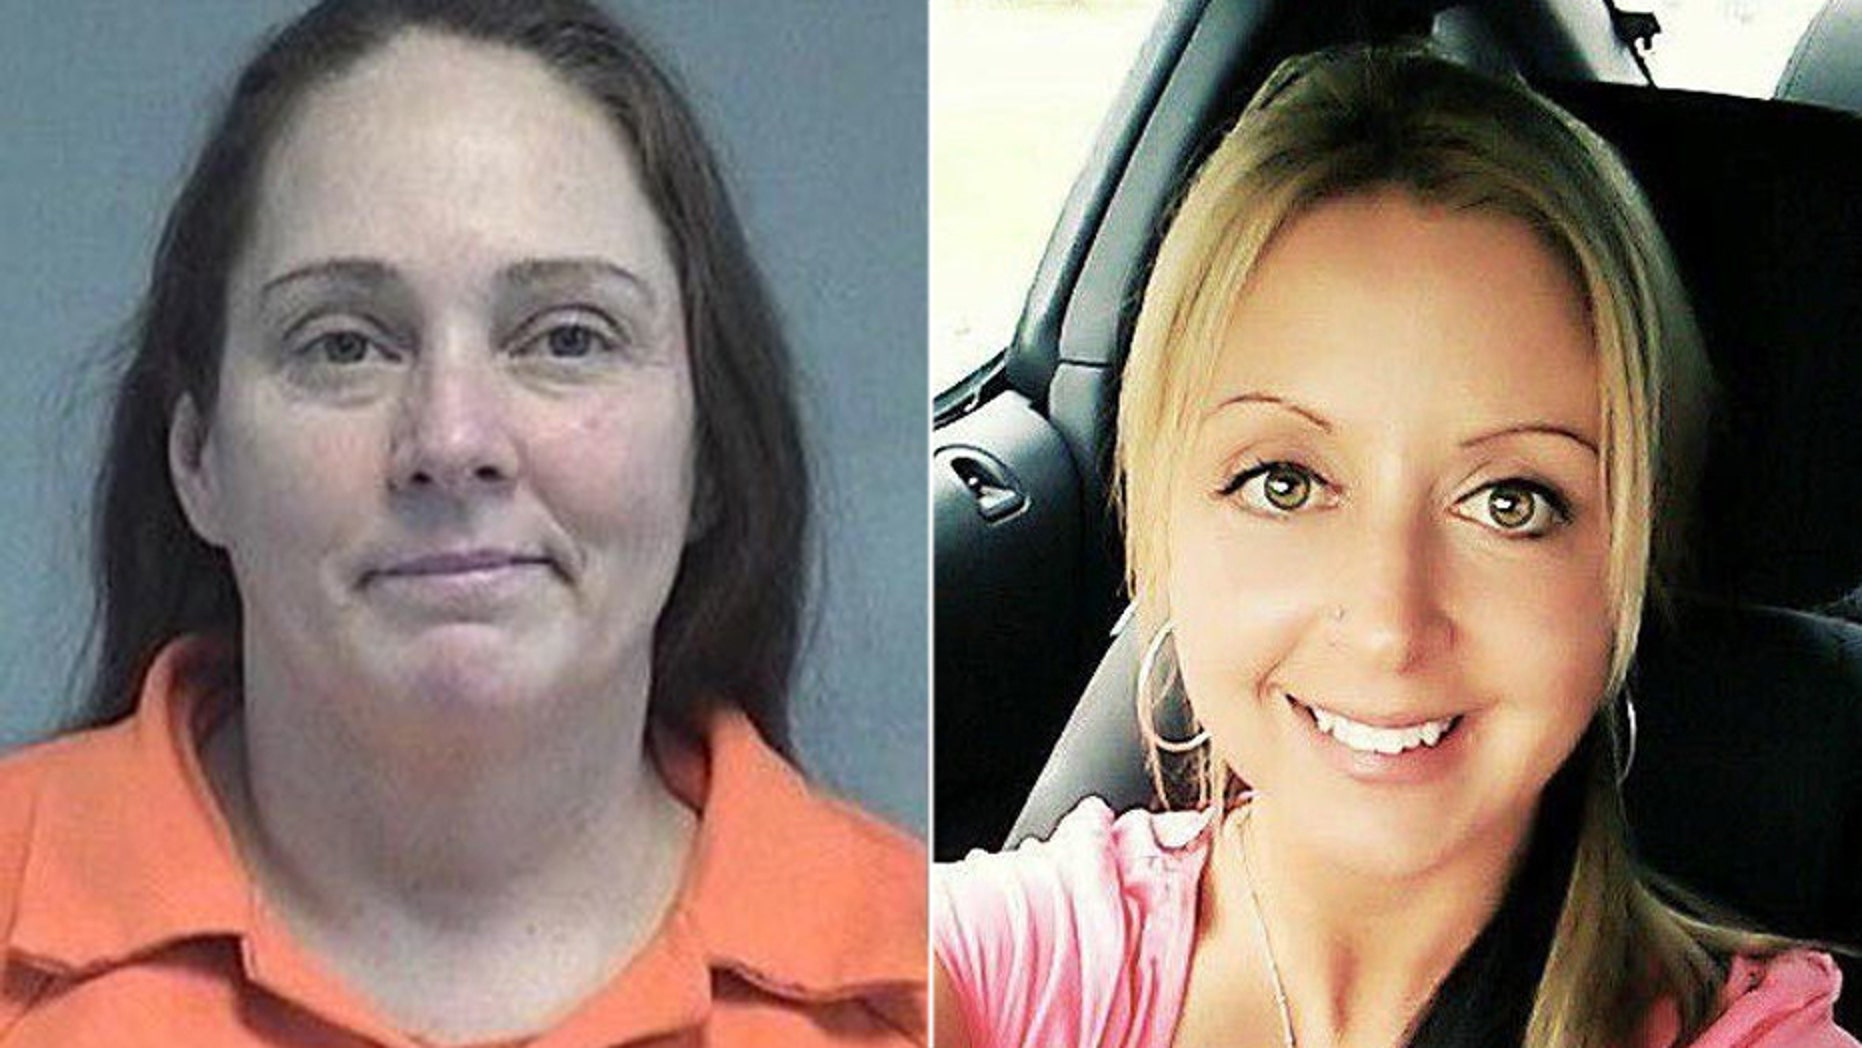 Jennifer Sybert, left, is a suspect in the disappearance of Joleen Cummings, right. Sybert reportedly was the last person to see Cummings before she was reported missing on May 13.